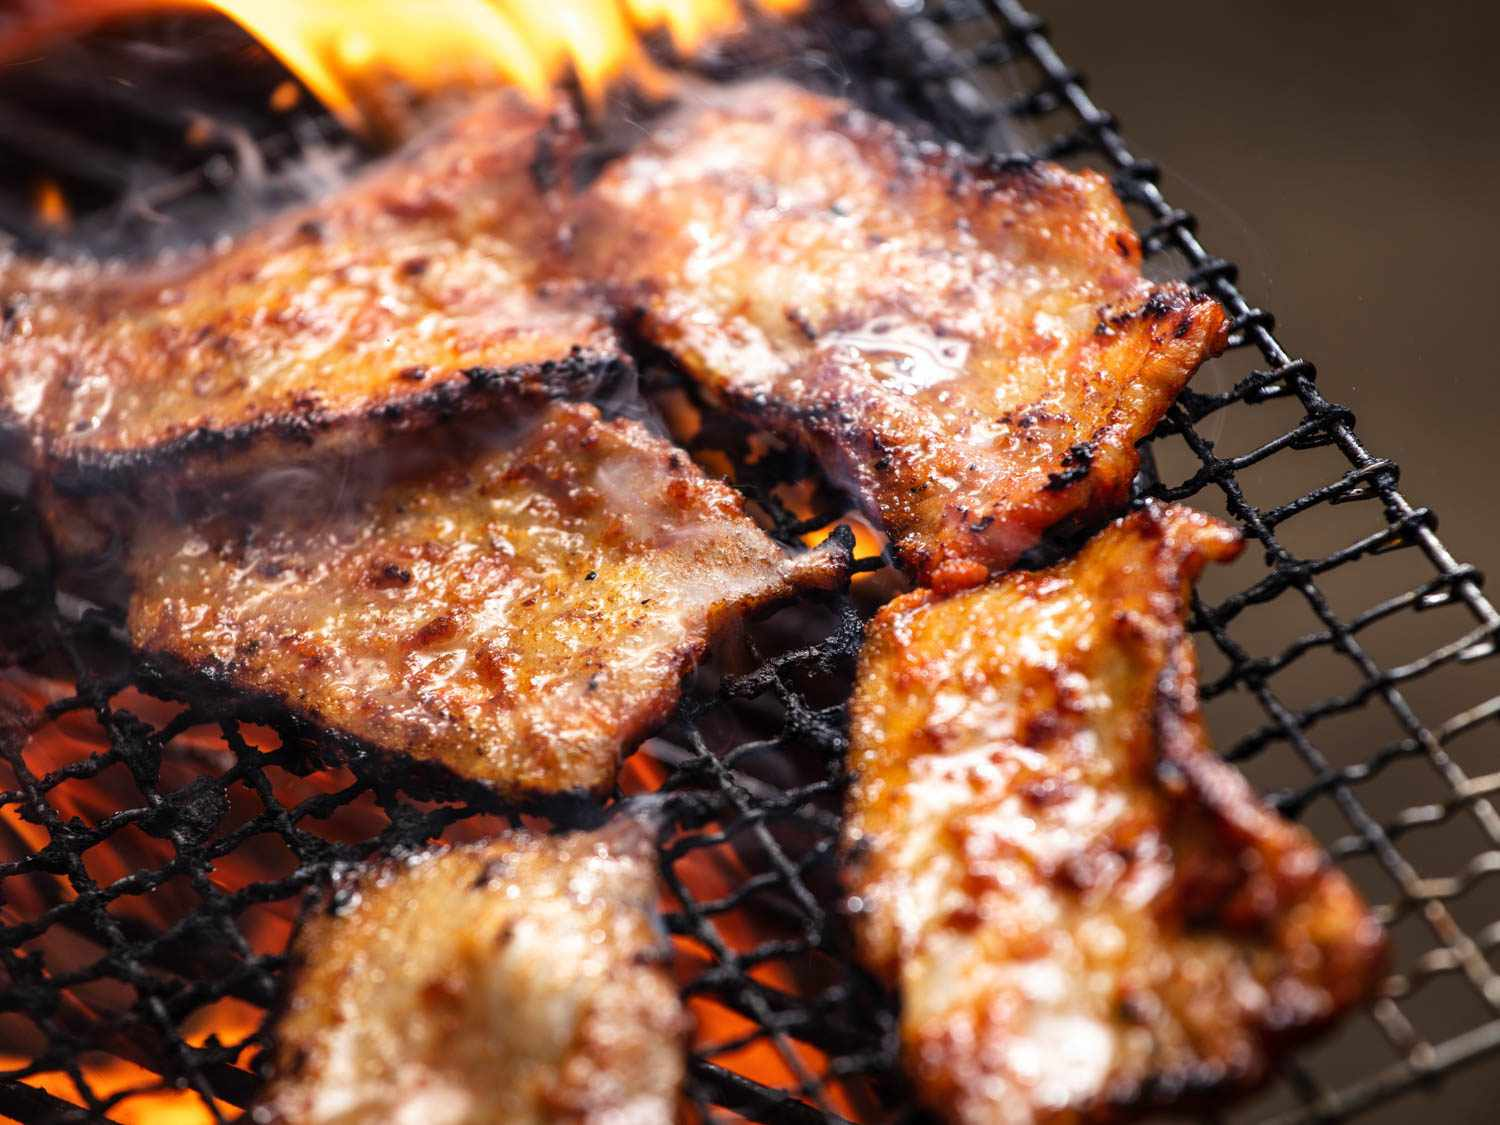 Pieces of pork belly sizzling on the grill.